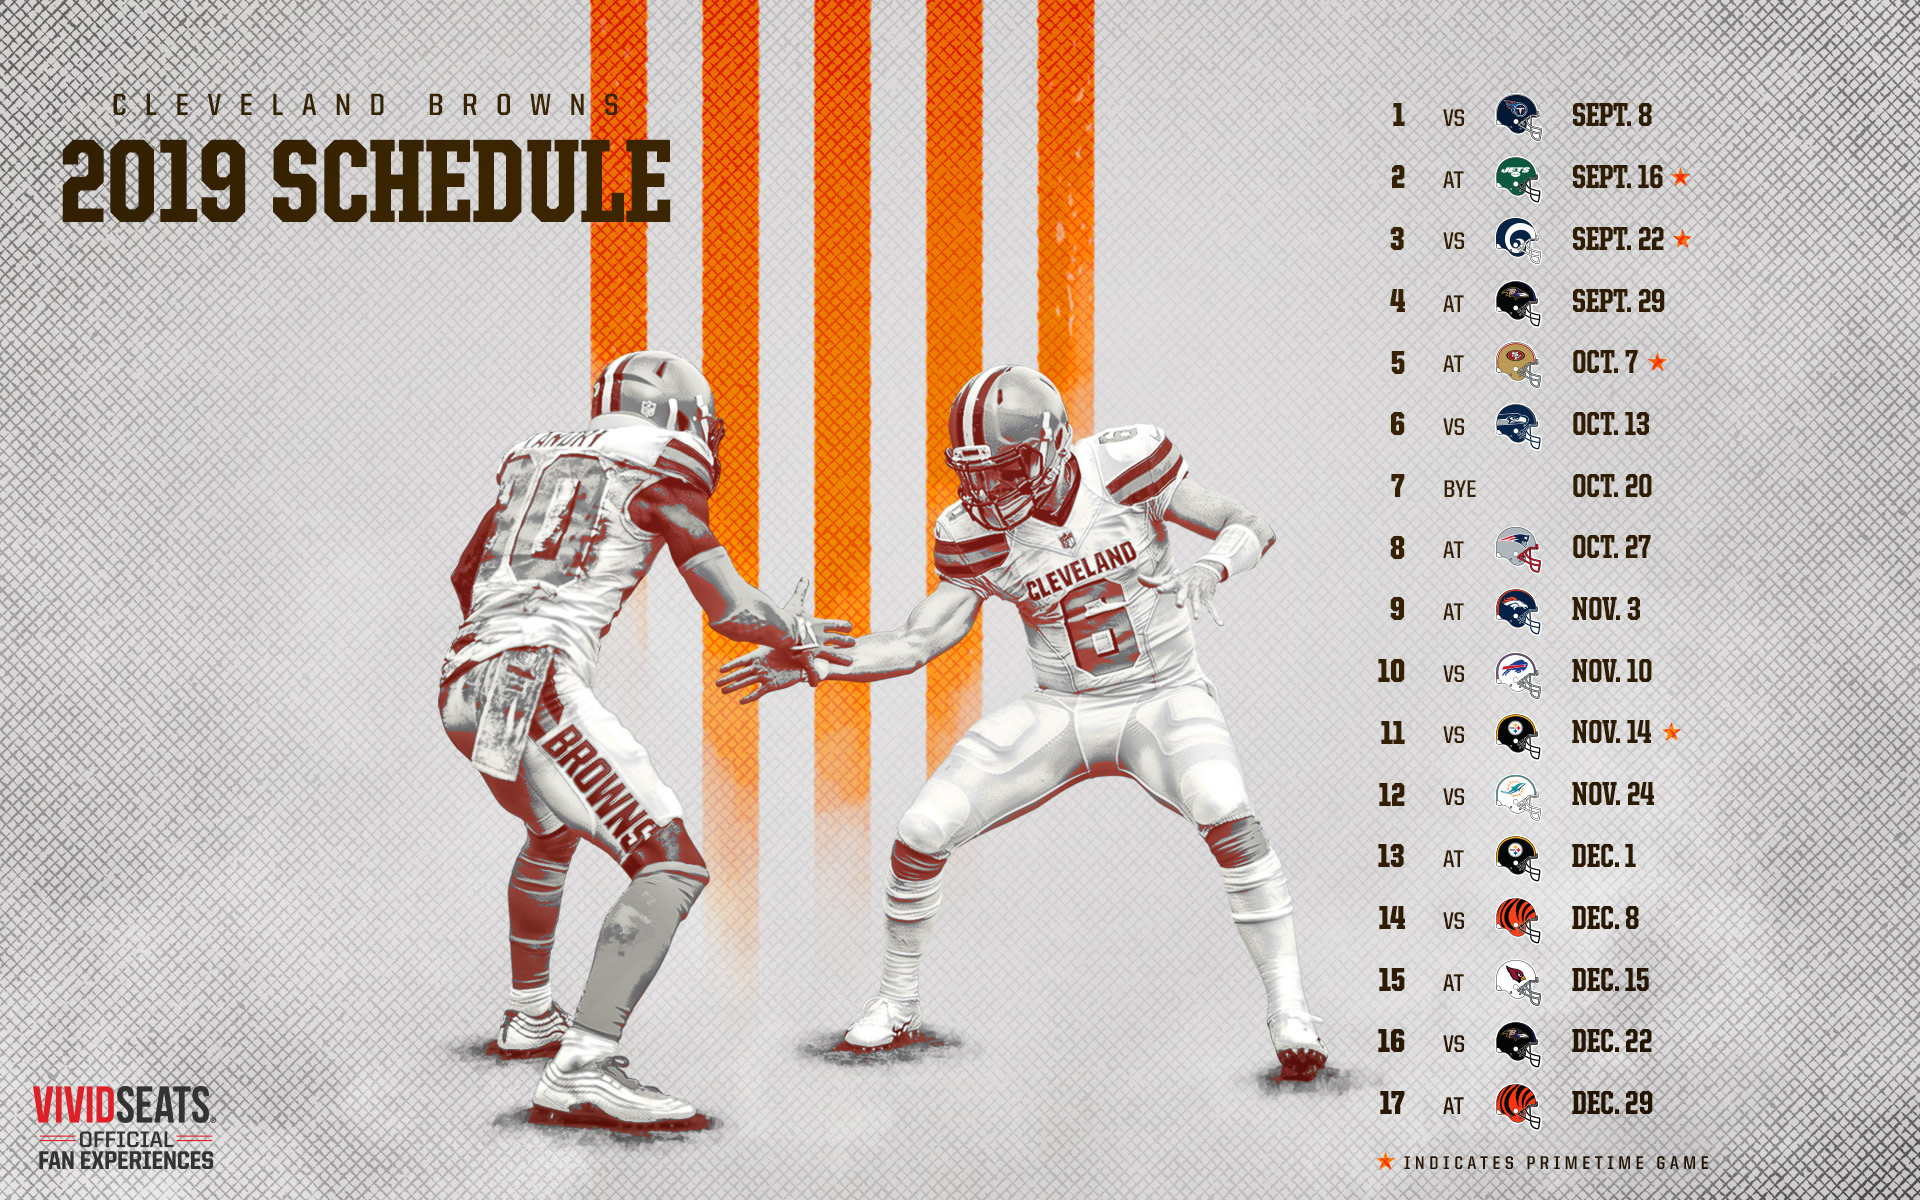 image regarding Denver Broncos Printable Schedule named Browns Agenda Downloads Cleveland Browns